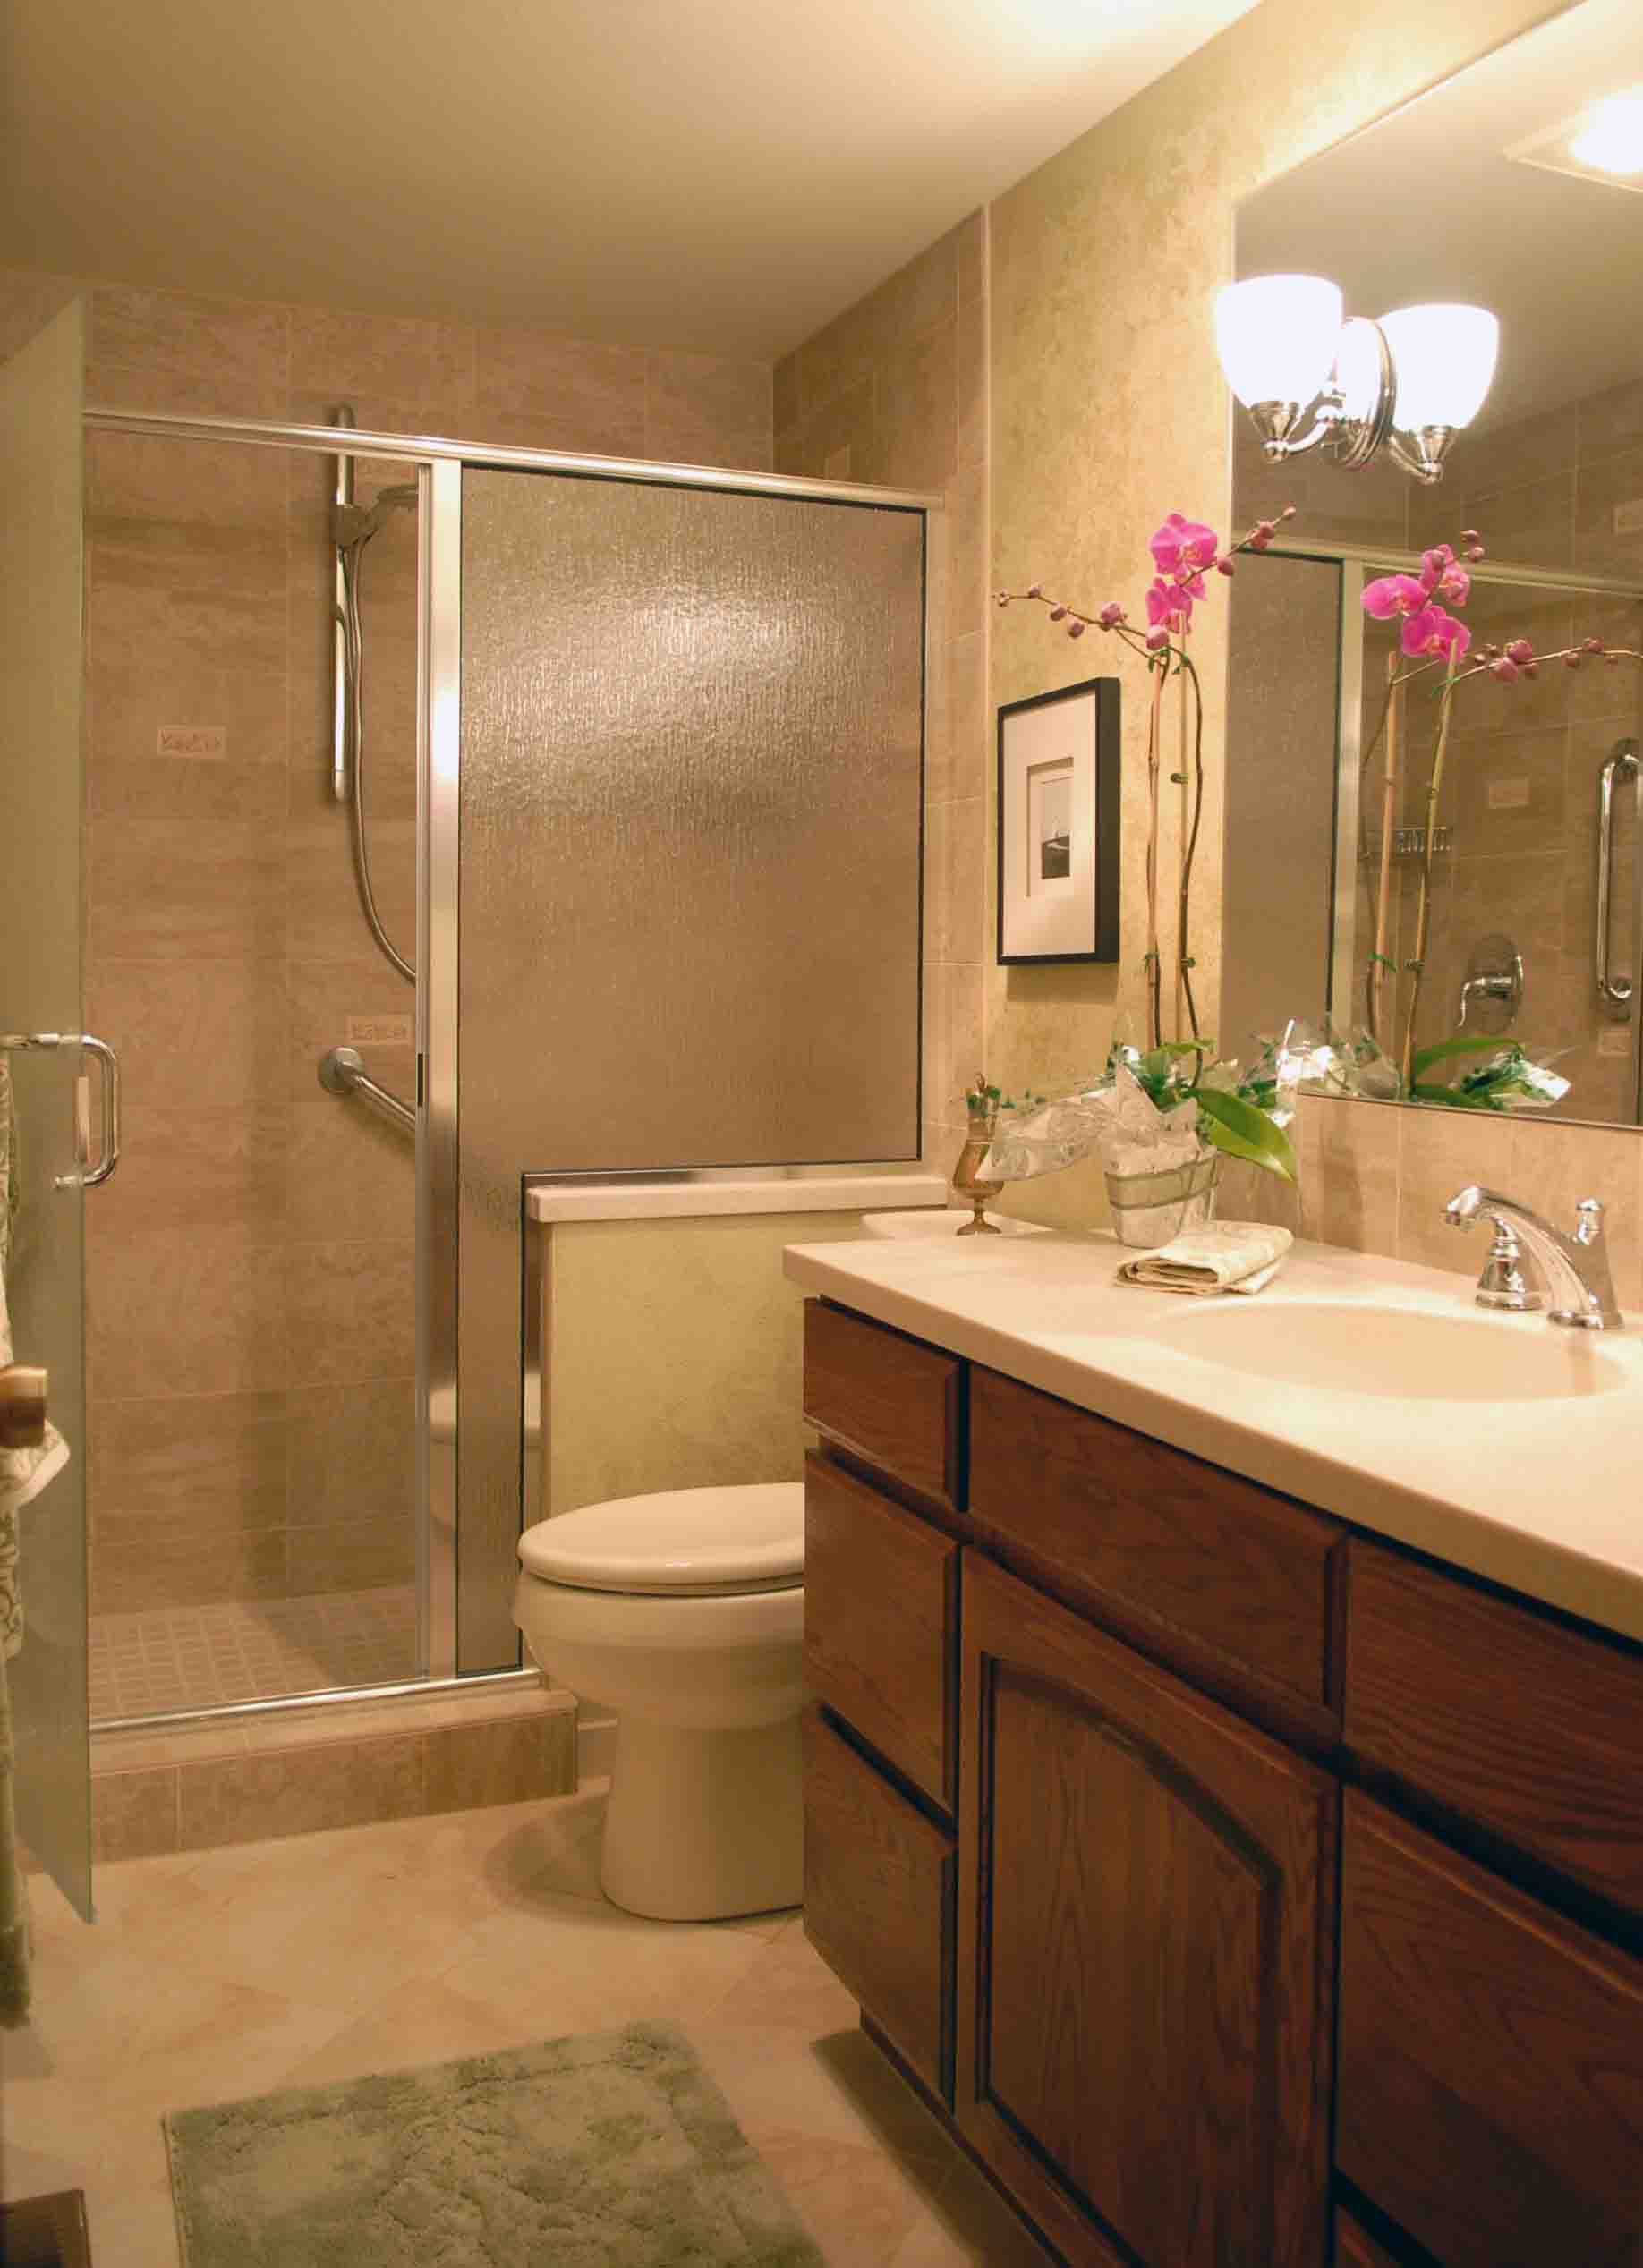 Intresting Bathroom Ideas For Small Spaces Design Ideas (Image 5 of 10)